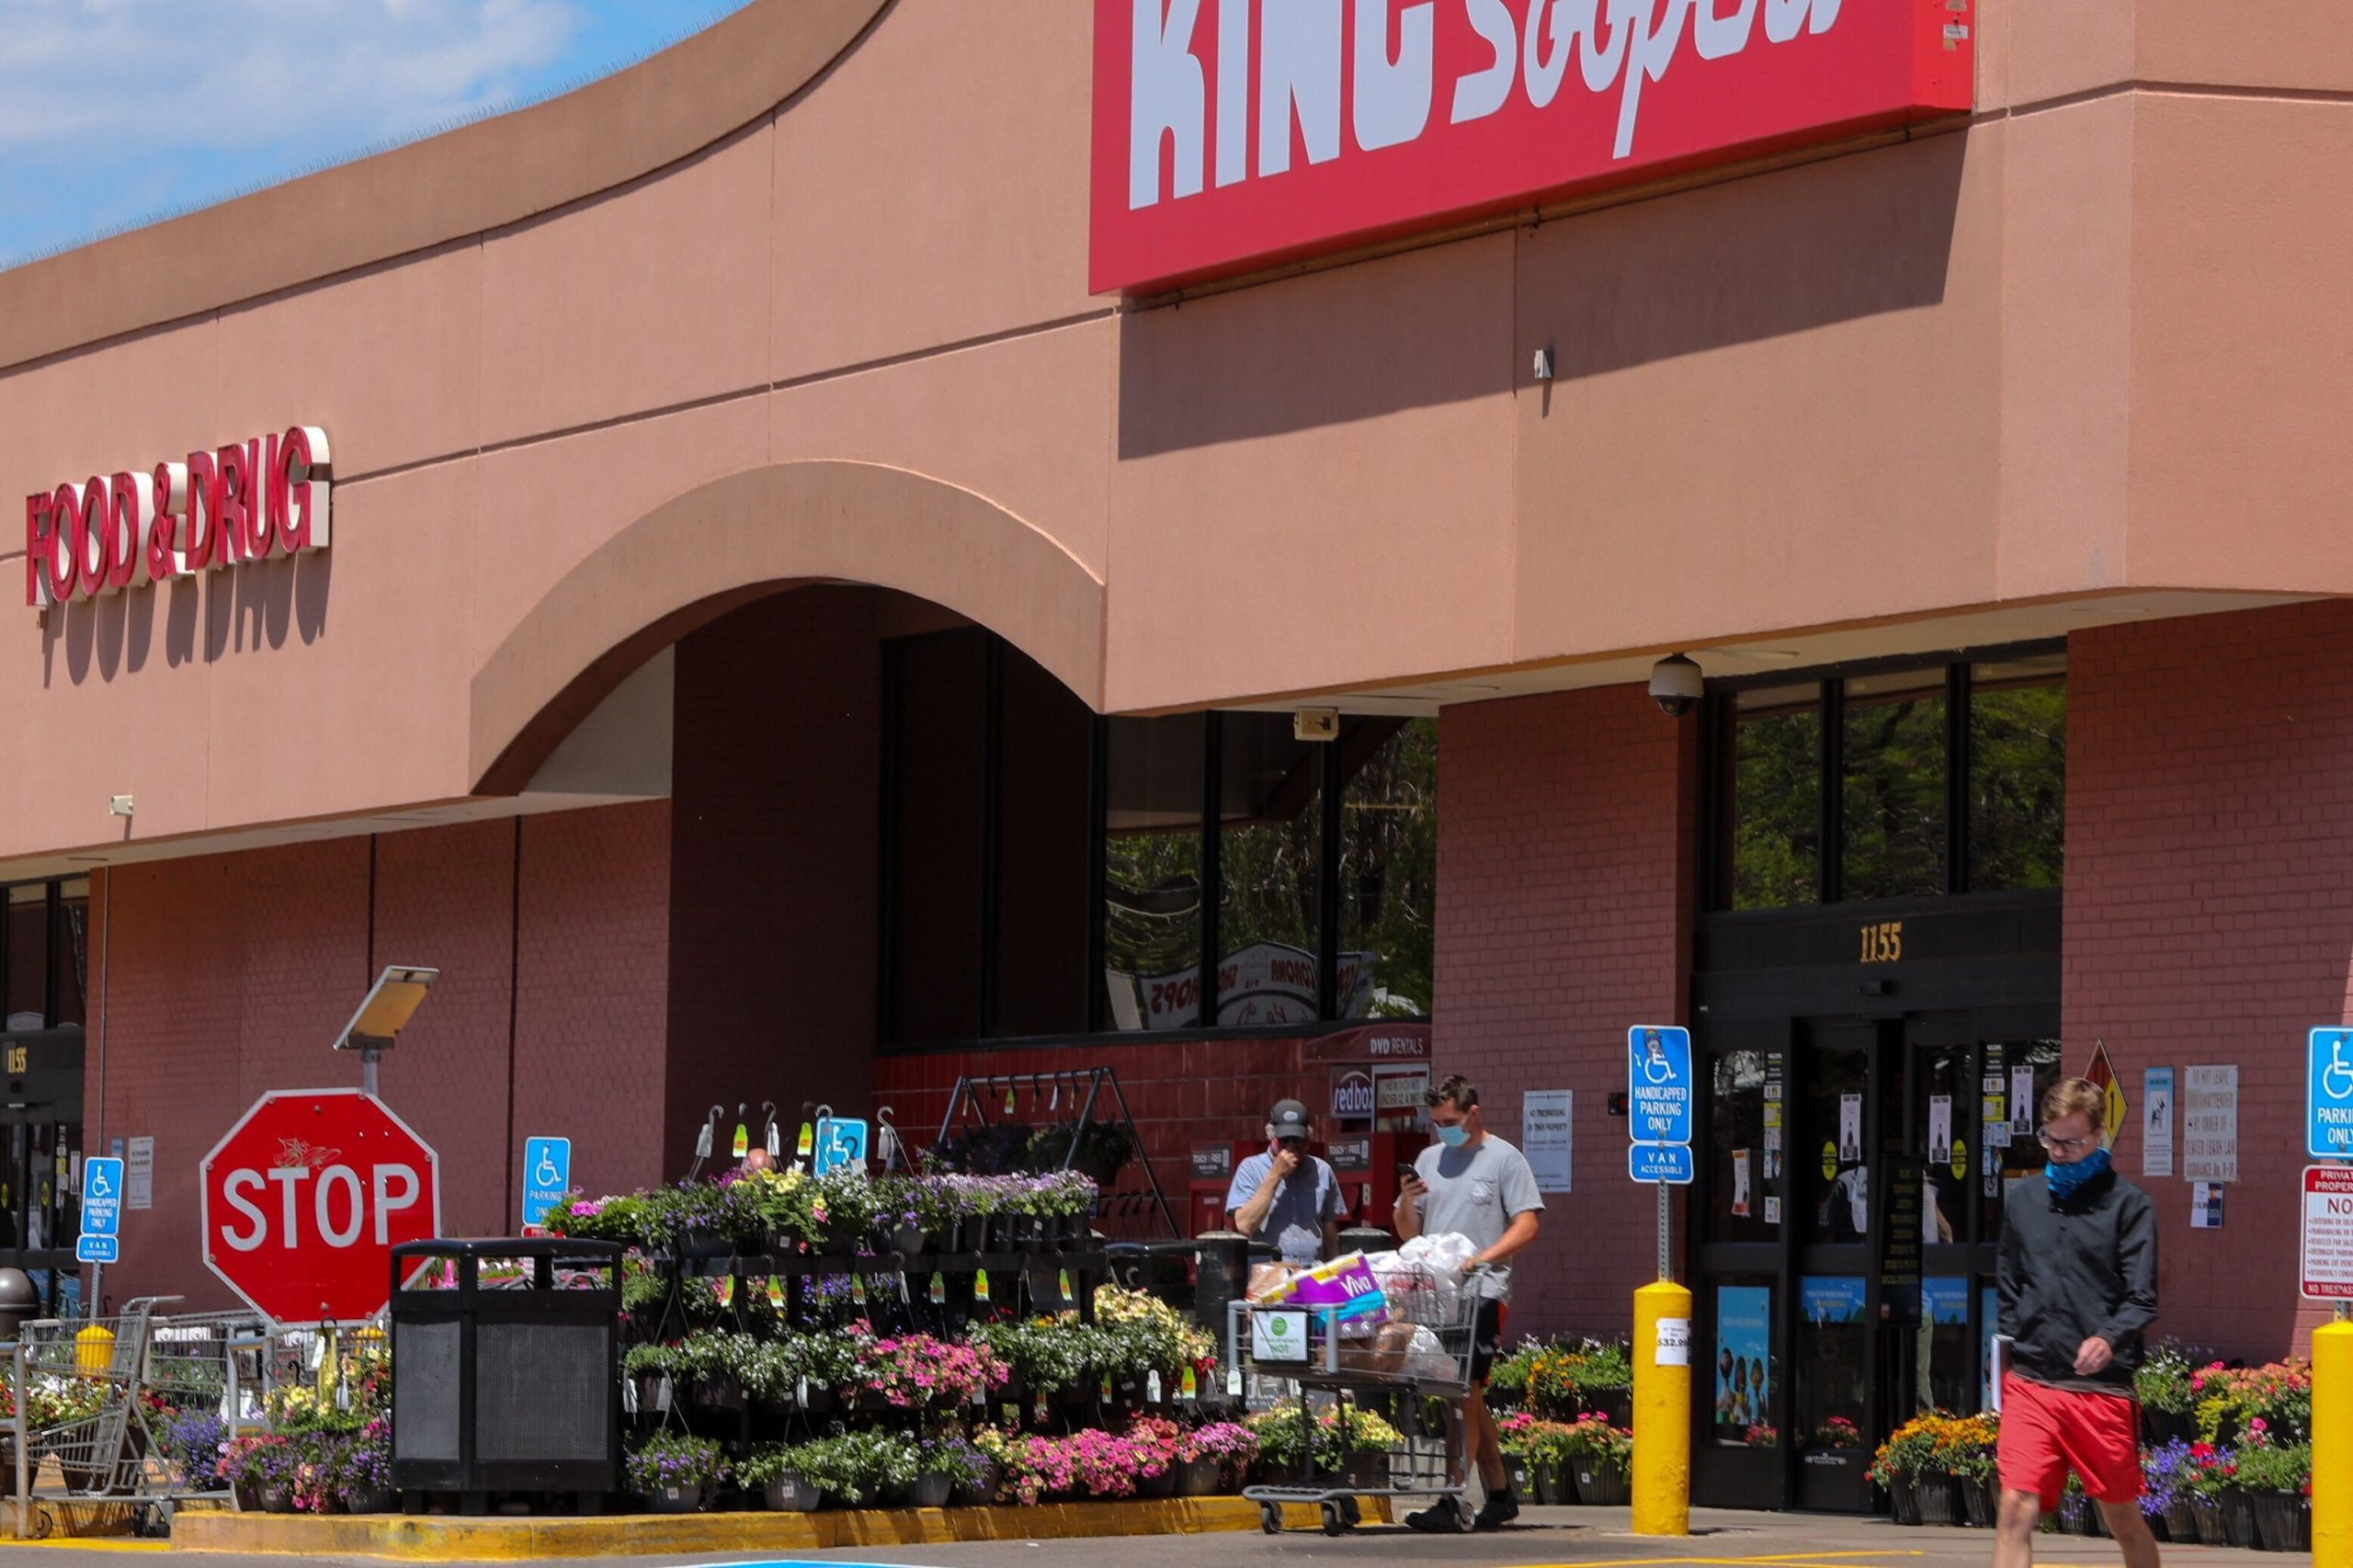 The entrance to the King Soopers in Denver's Capitol Hill neighborhood, May 19, 2020.